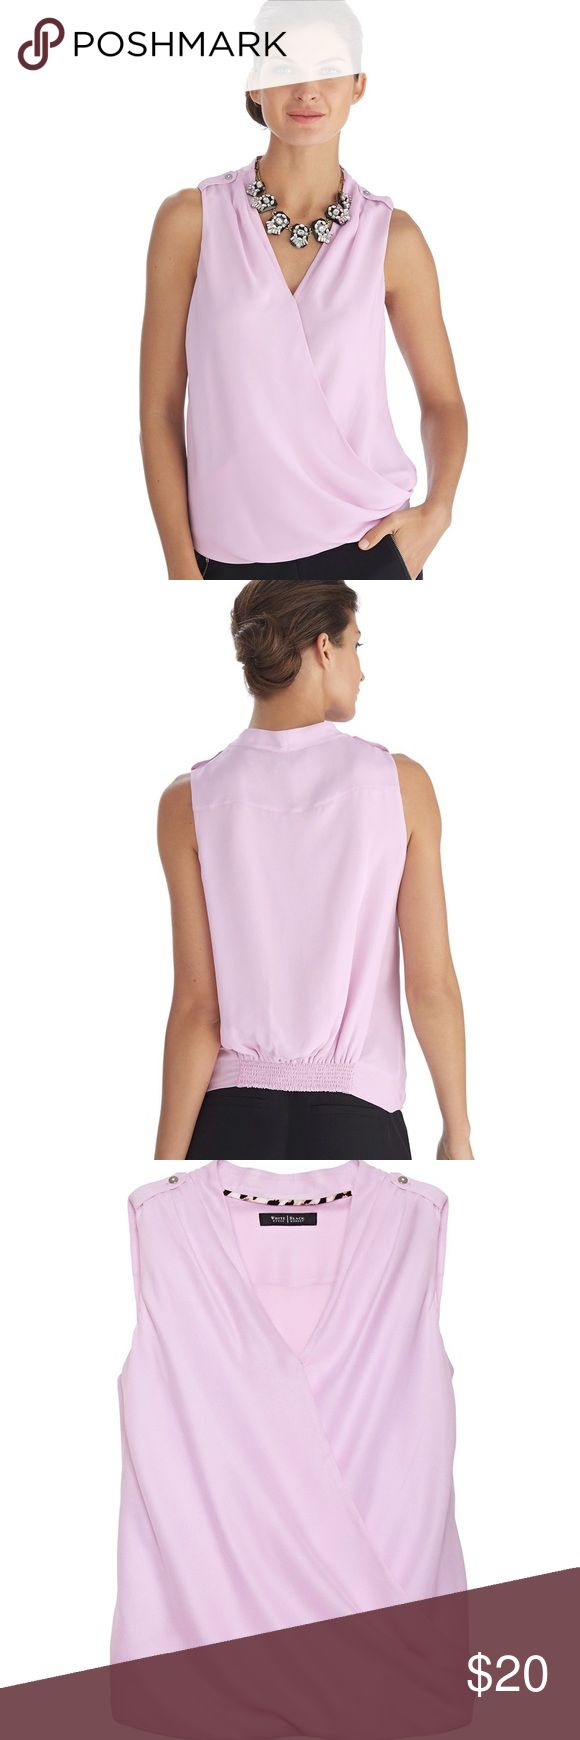 "White House Black Market Sleeveless Silk Blouse Silky soft blouse in a pastel hue exudes femininity. Wrapped surplice neckline and blouson fit flatters flawlessly. Blouson fit. Smocked back hem. Epaulettes at tops of shoulders with silvertone buttons. Wrapped surplice neckline with secure snap. Pleats from shoulders and at side hem. Fully lined. 100% silk. Hand wash, cold. Imported. Regular: Approximately 24"" in length and 21"" Armpit to Armpit. White House Black Market Tops Blouses"